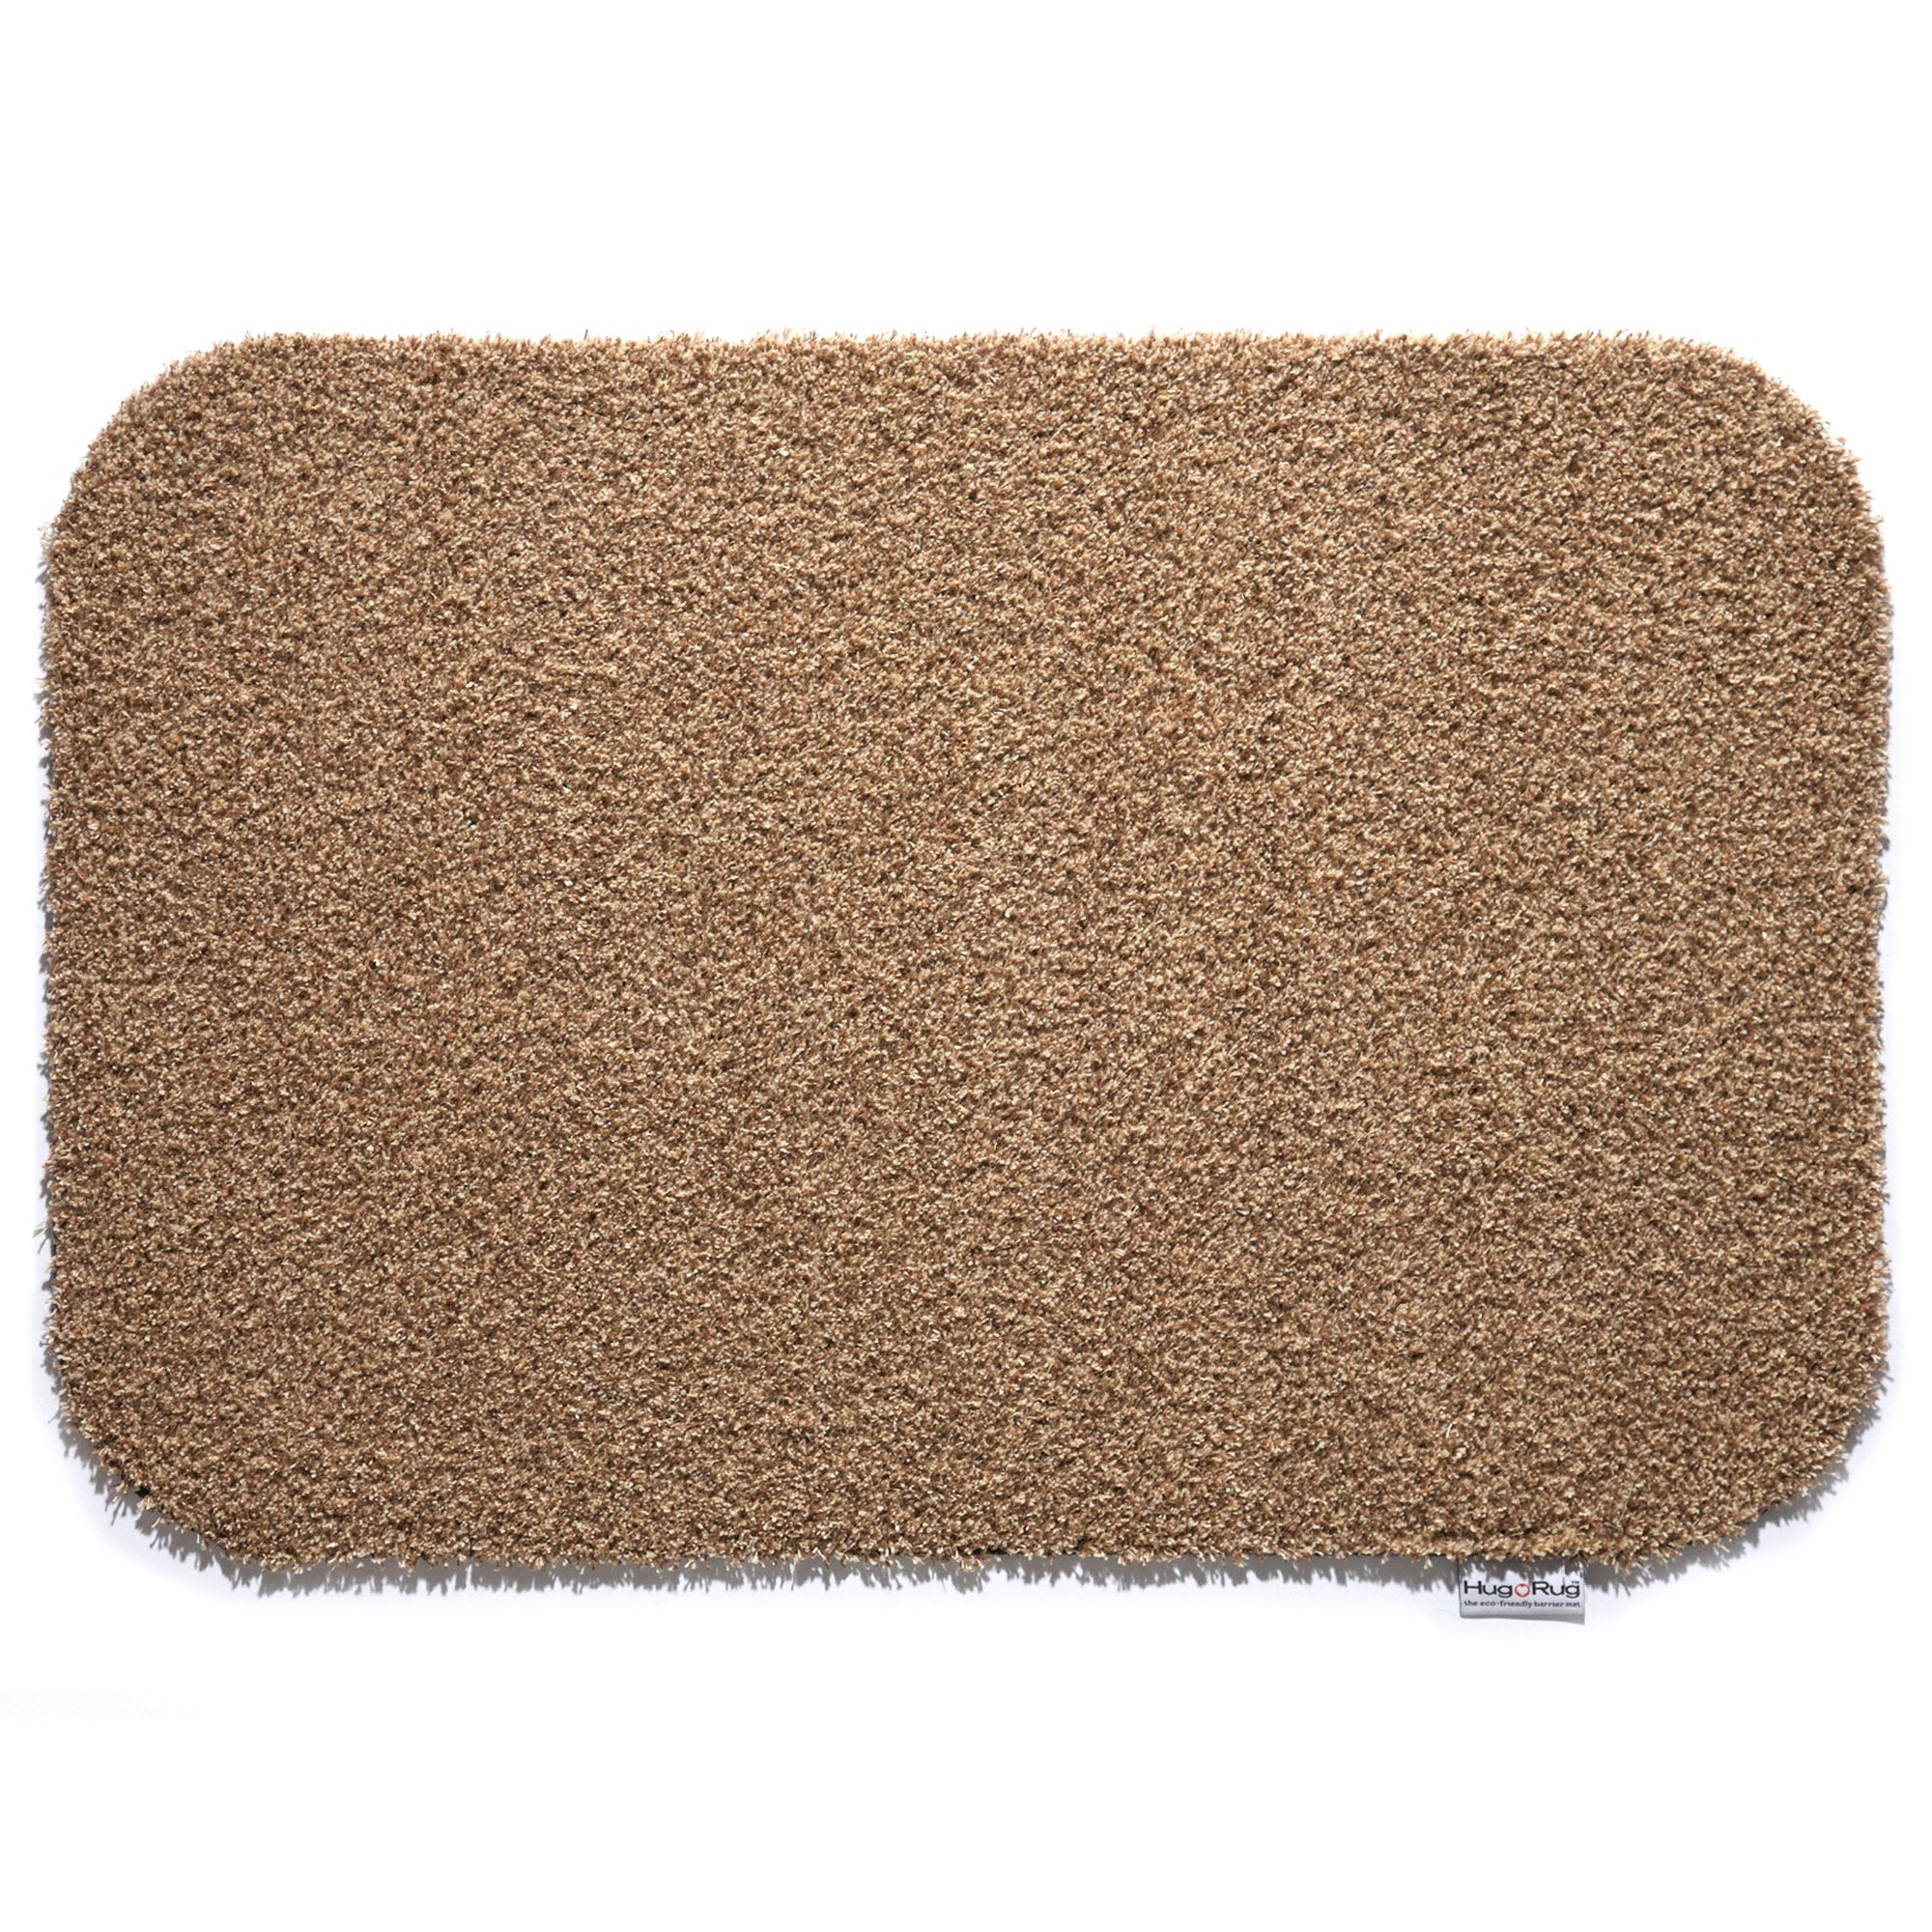 Compare prices for Hug Rug 50 x 75cm Doormat - Stone